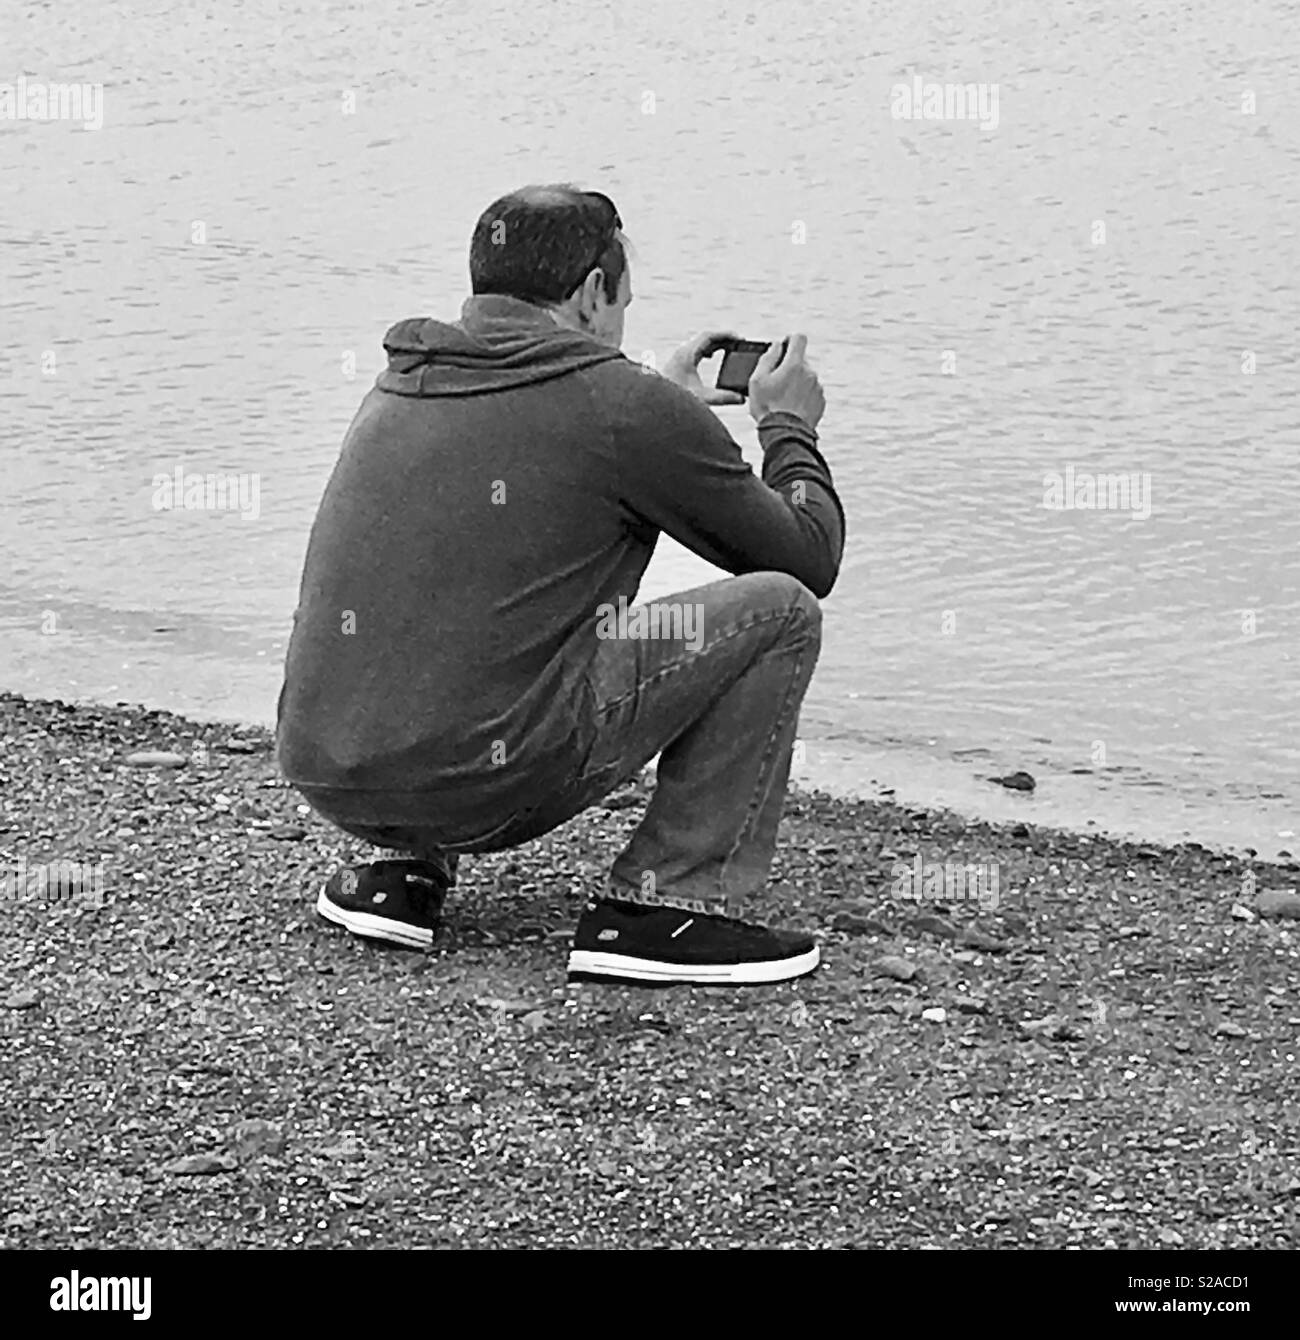 Man taking photos on the waters edge of a shingle beach - Stock Image